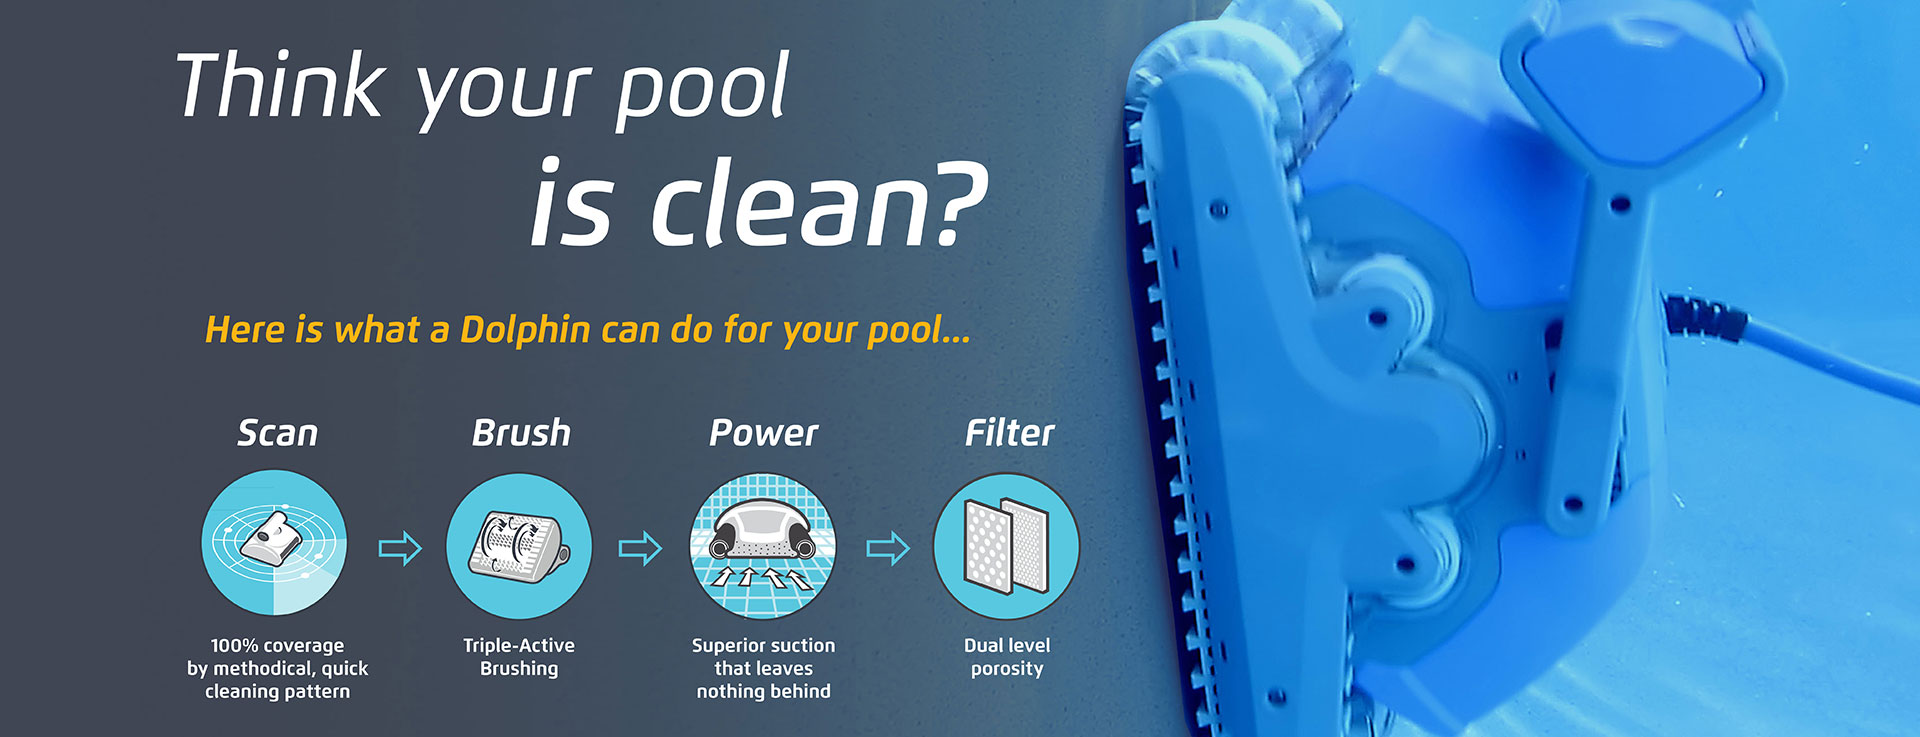 Dolphin Robot Pool Cleaner